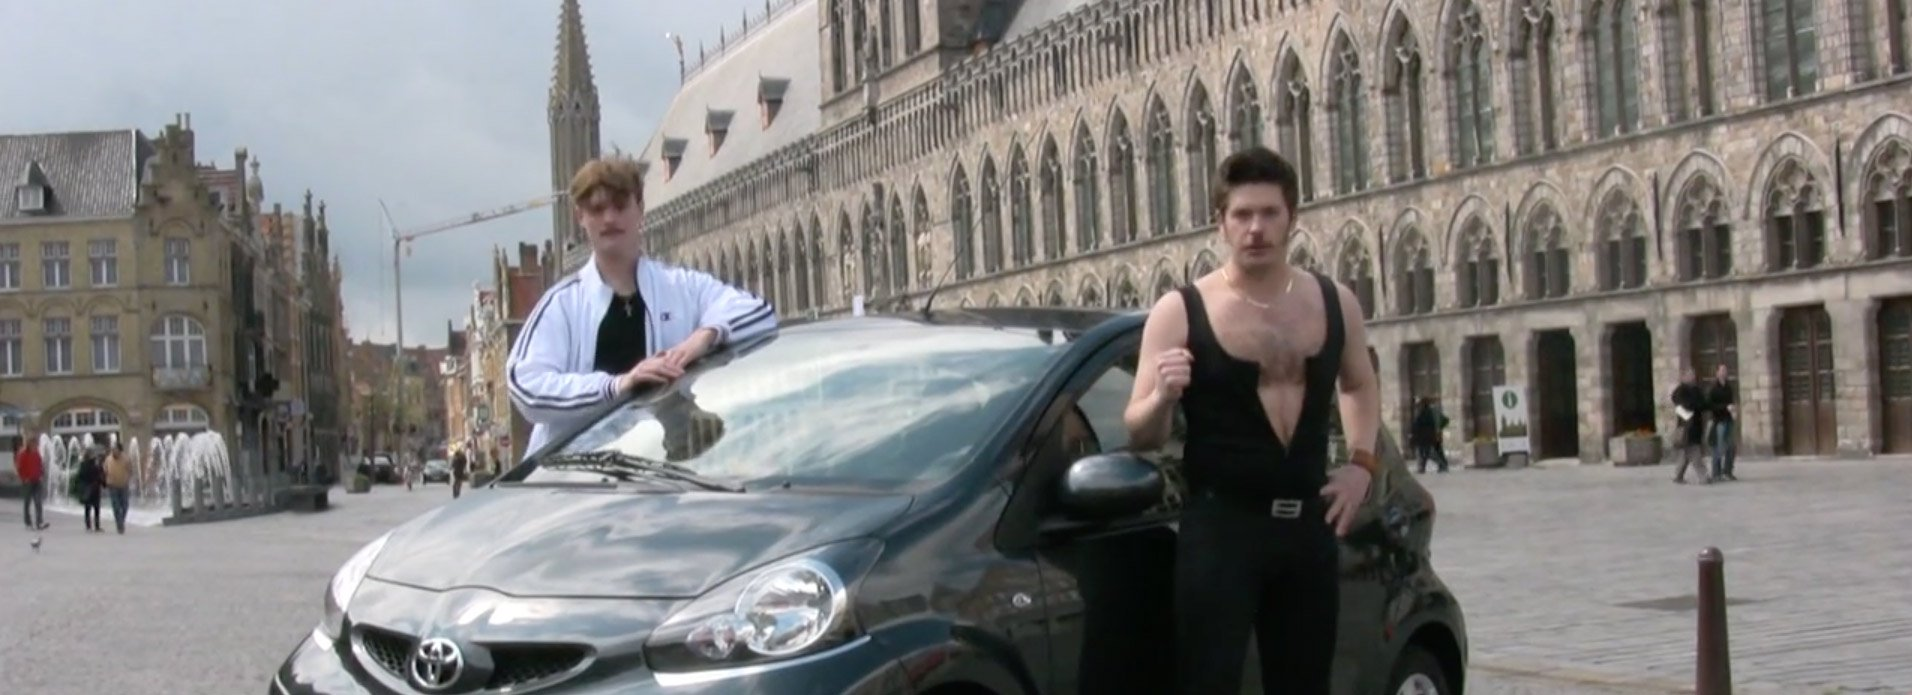 Ryan Northcott Actor Car Dance Party Belgium